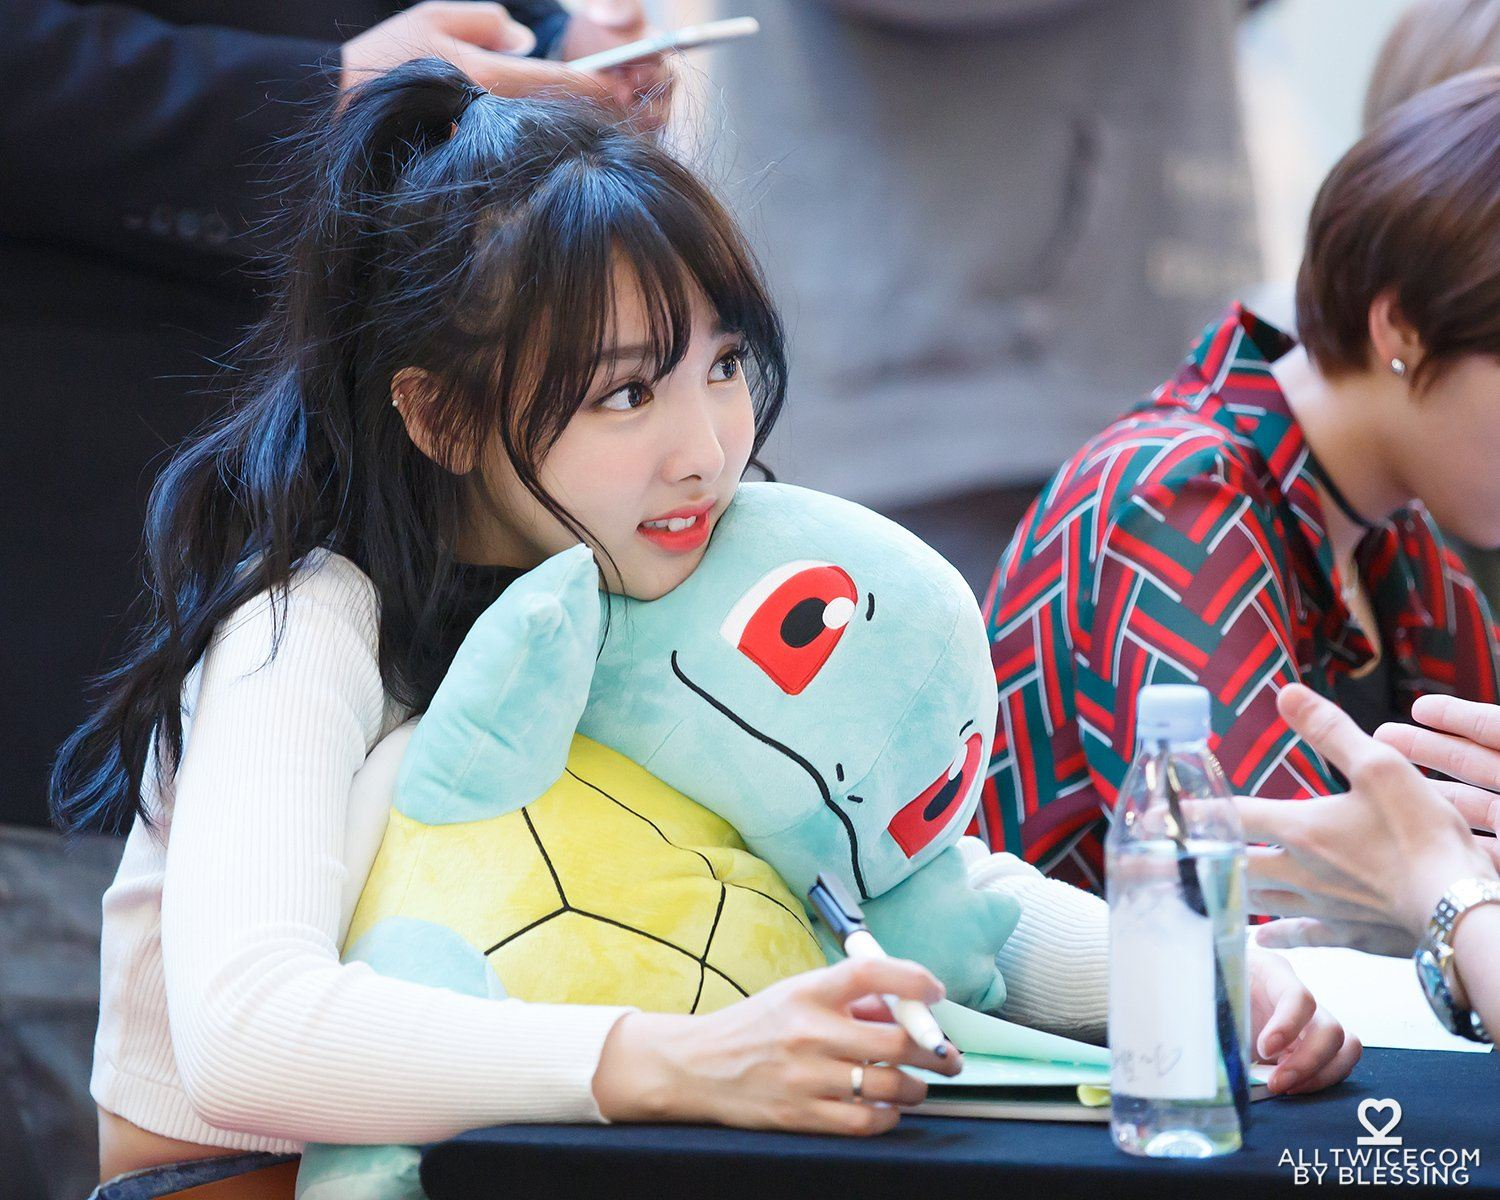 7 Times Twice Nayeon Proved She Can Pull Off Any Look